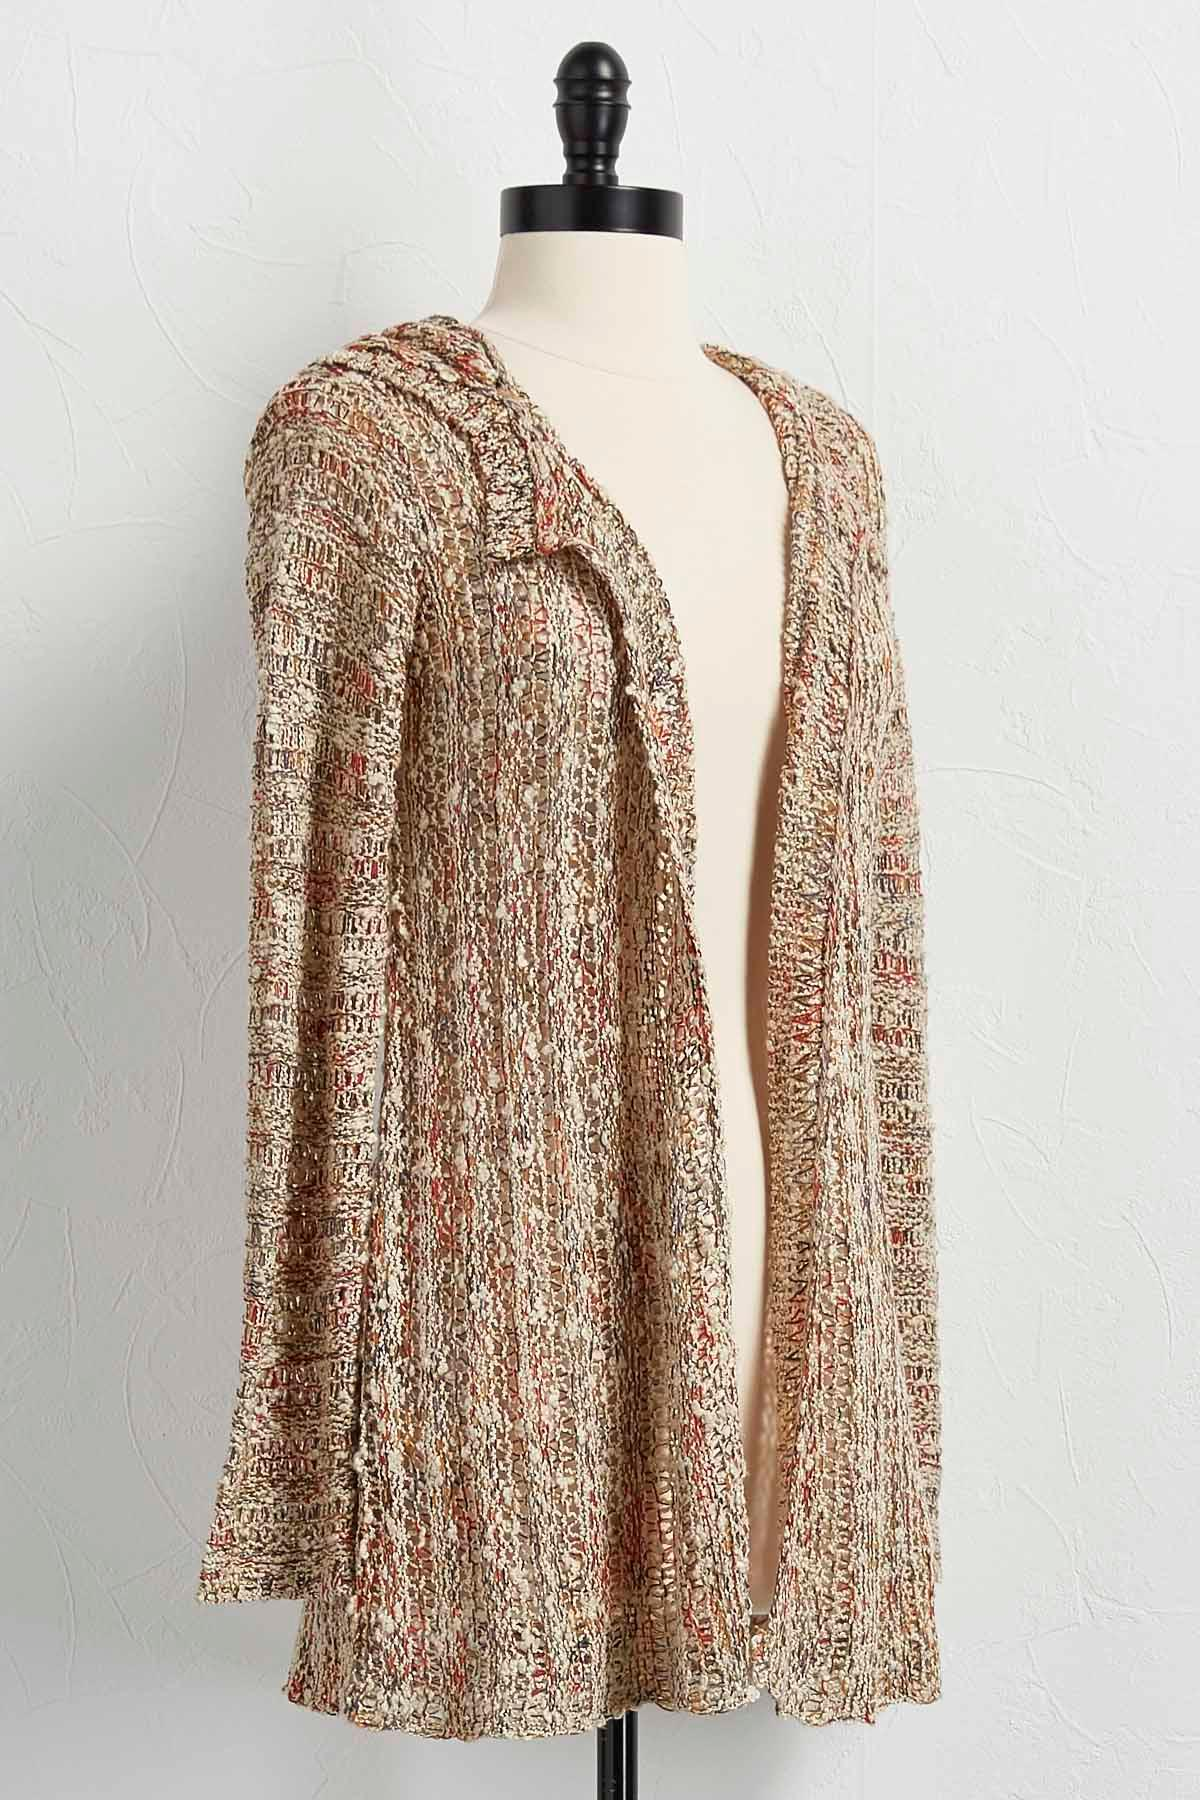 Hooded Marbled Cardigan